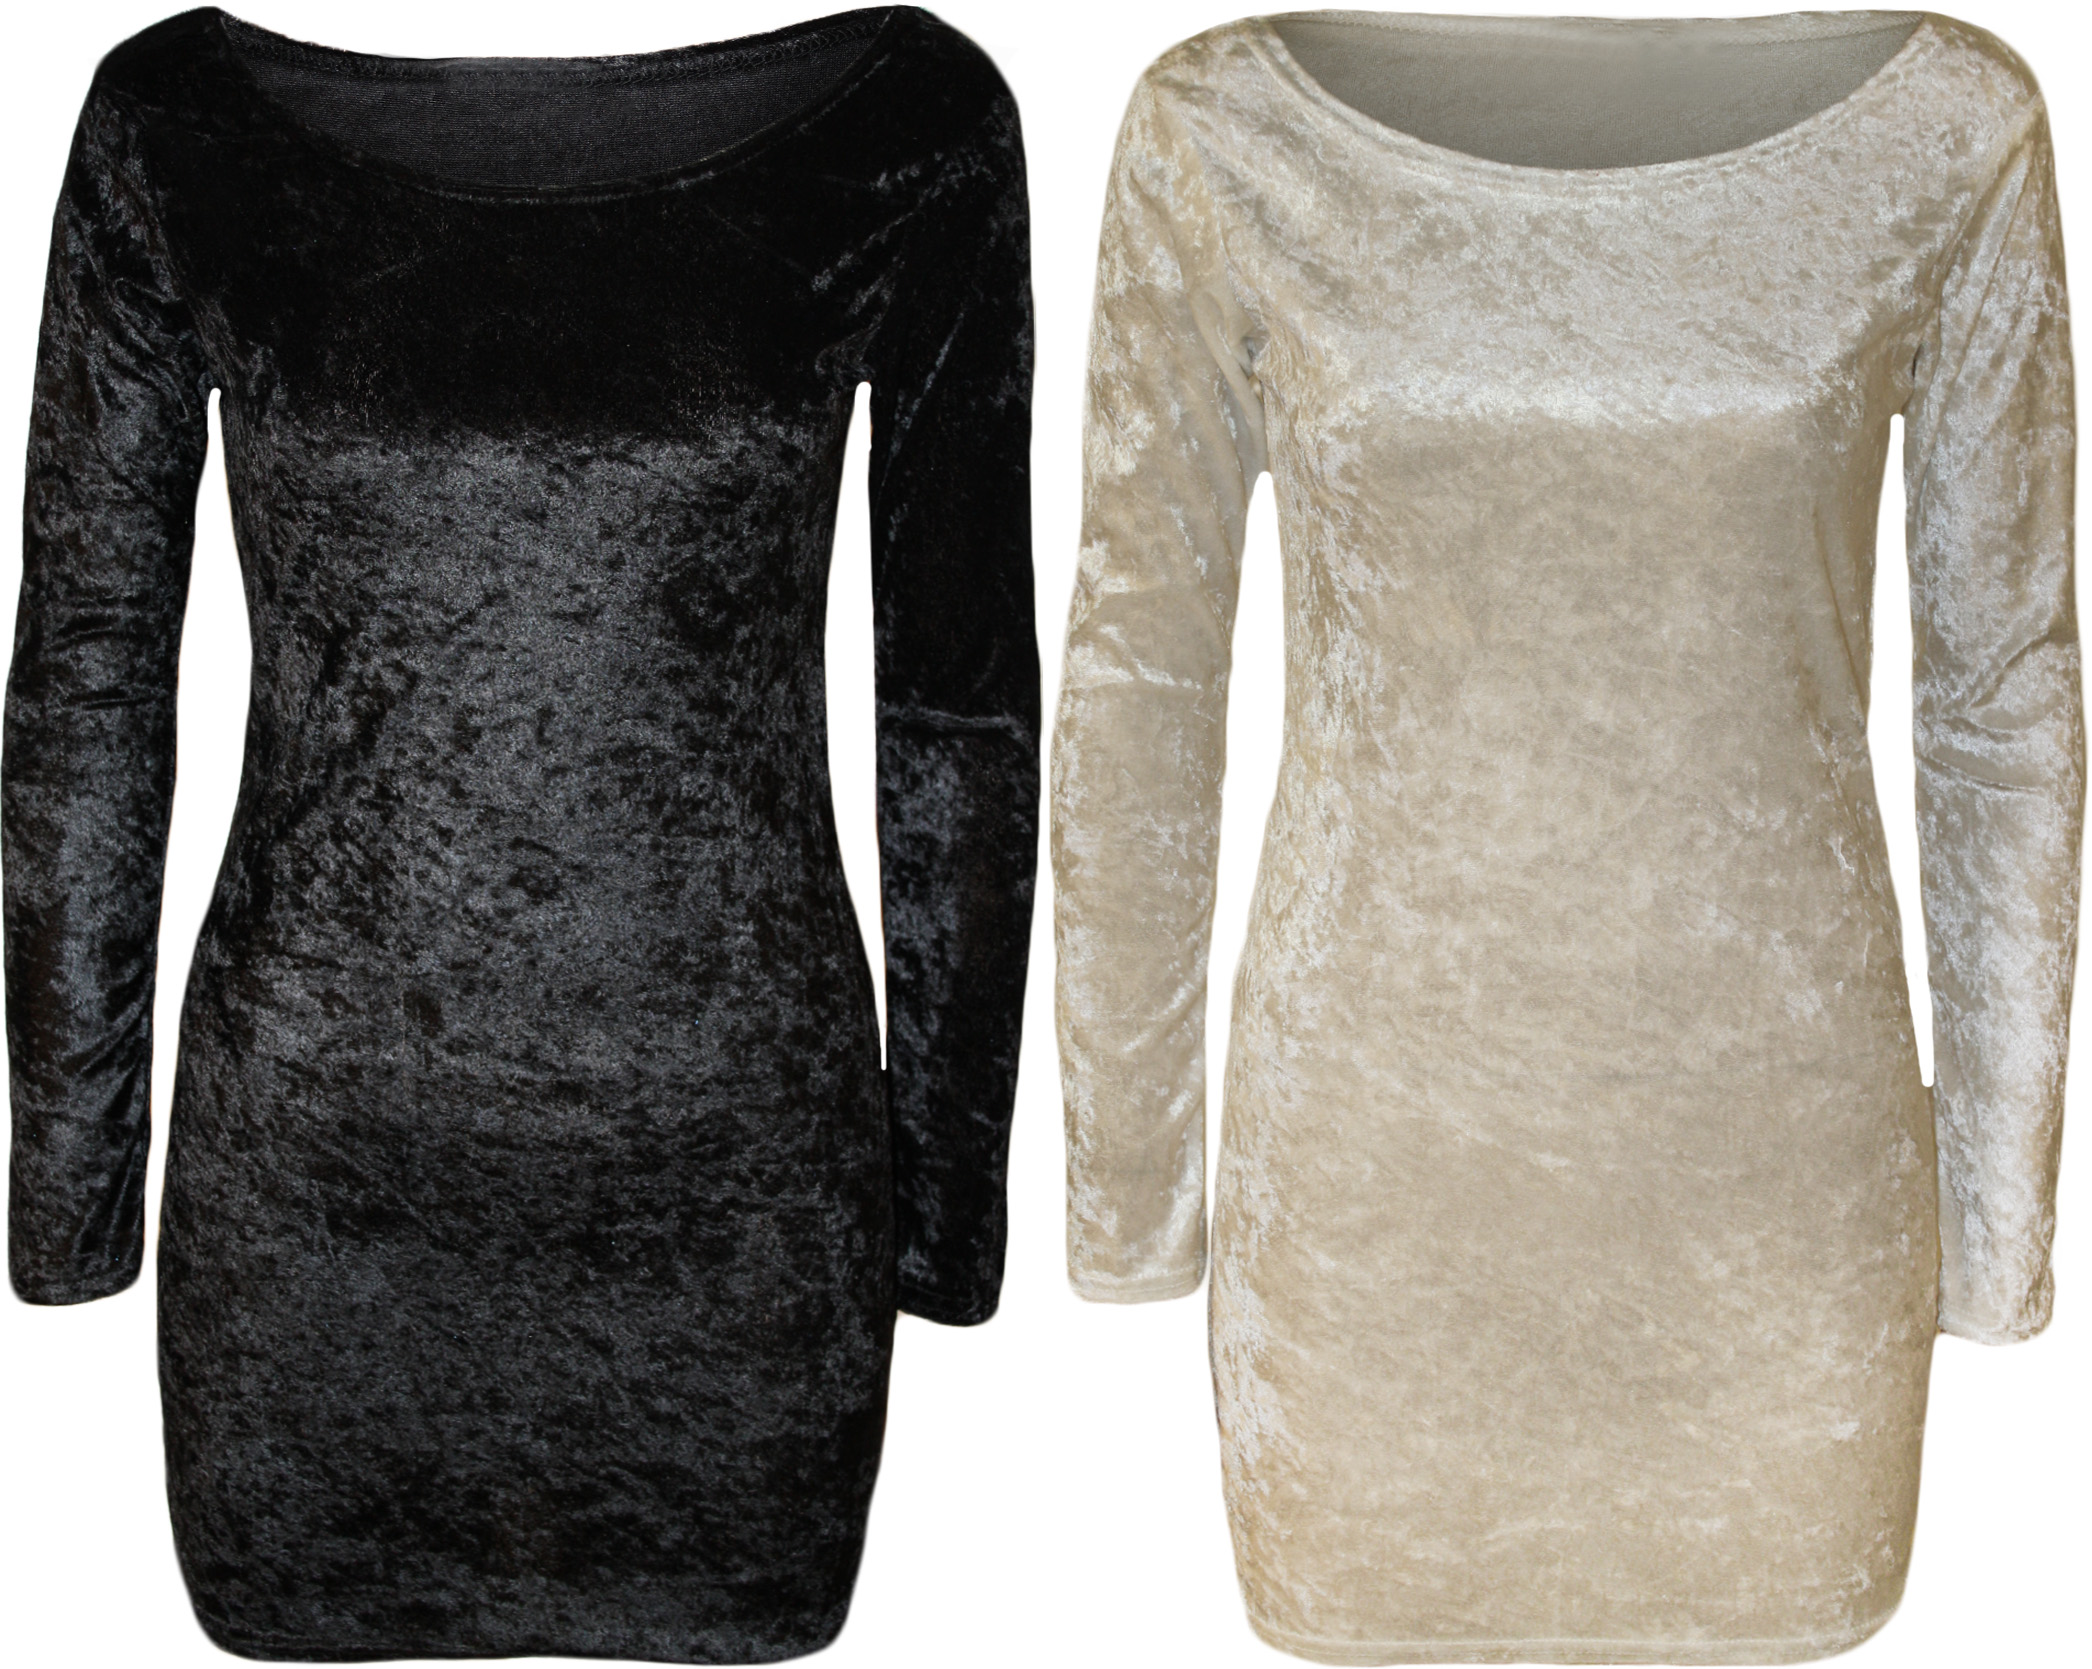 New-Womens-Velour-Velvet-Stretch-Bodycon-Ladies-Long-Sleeved-Mini-Dress-Top-8-14